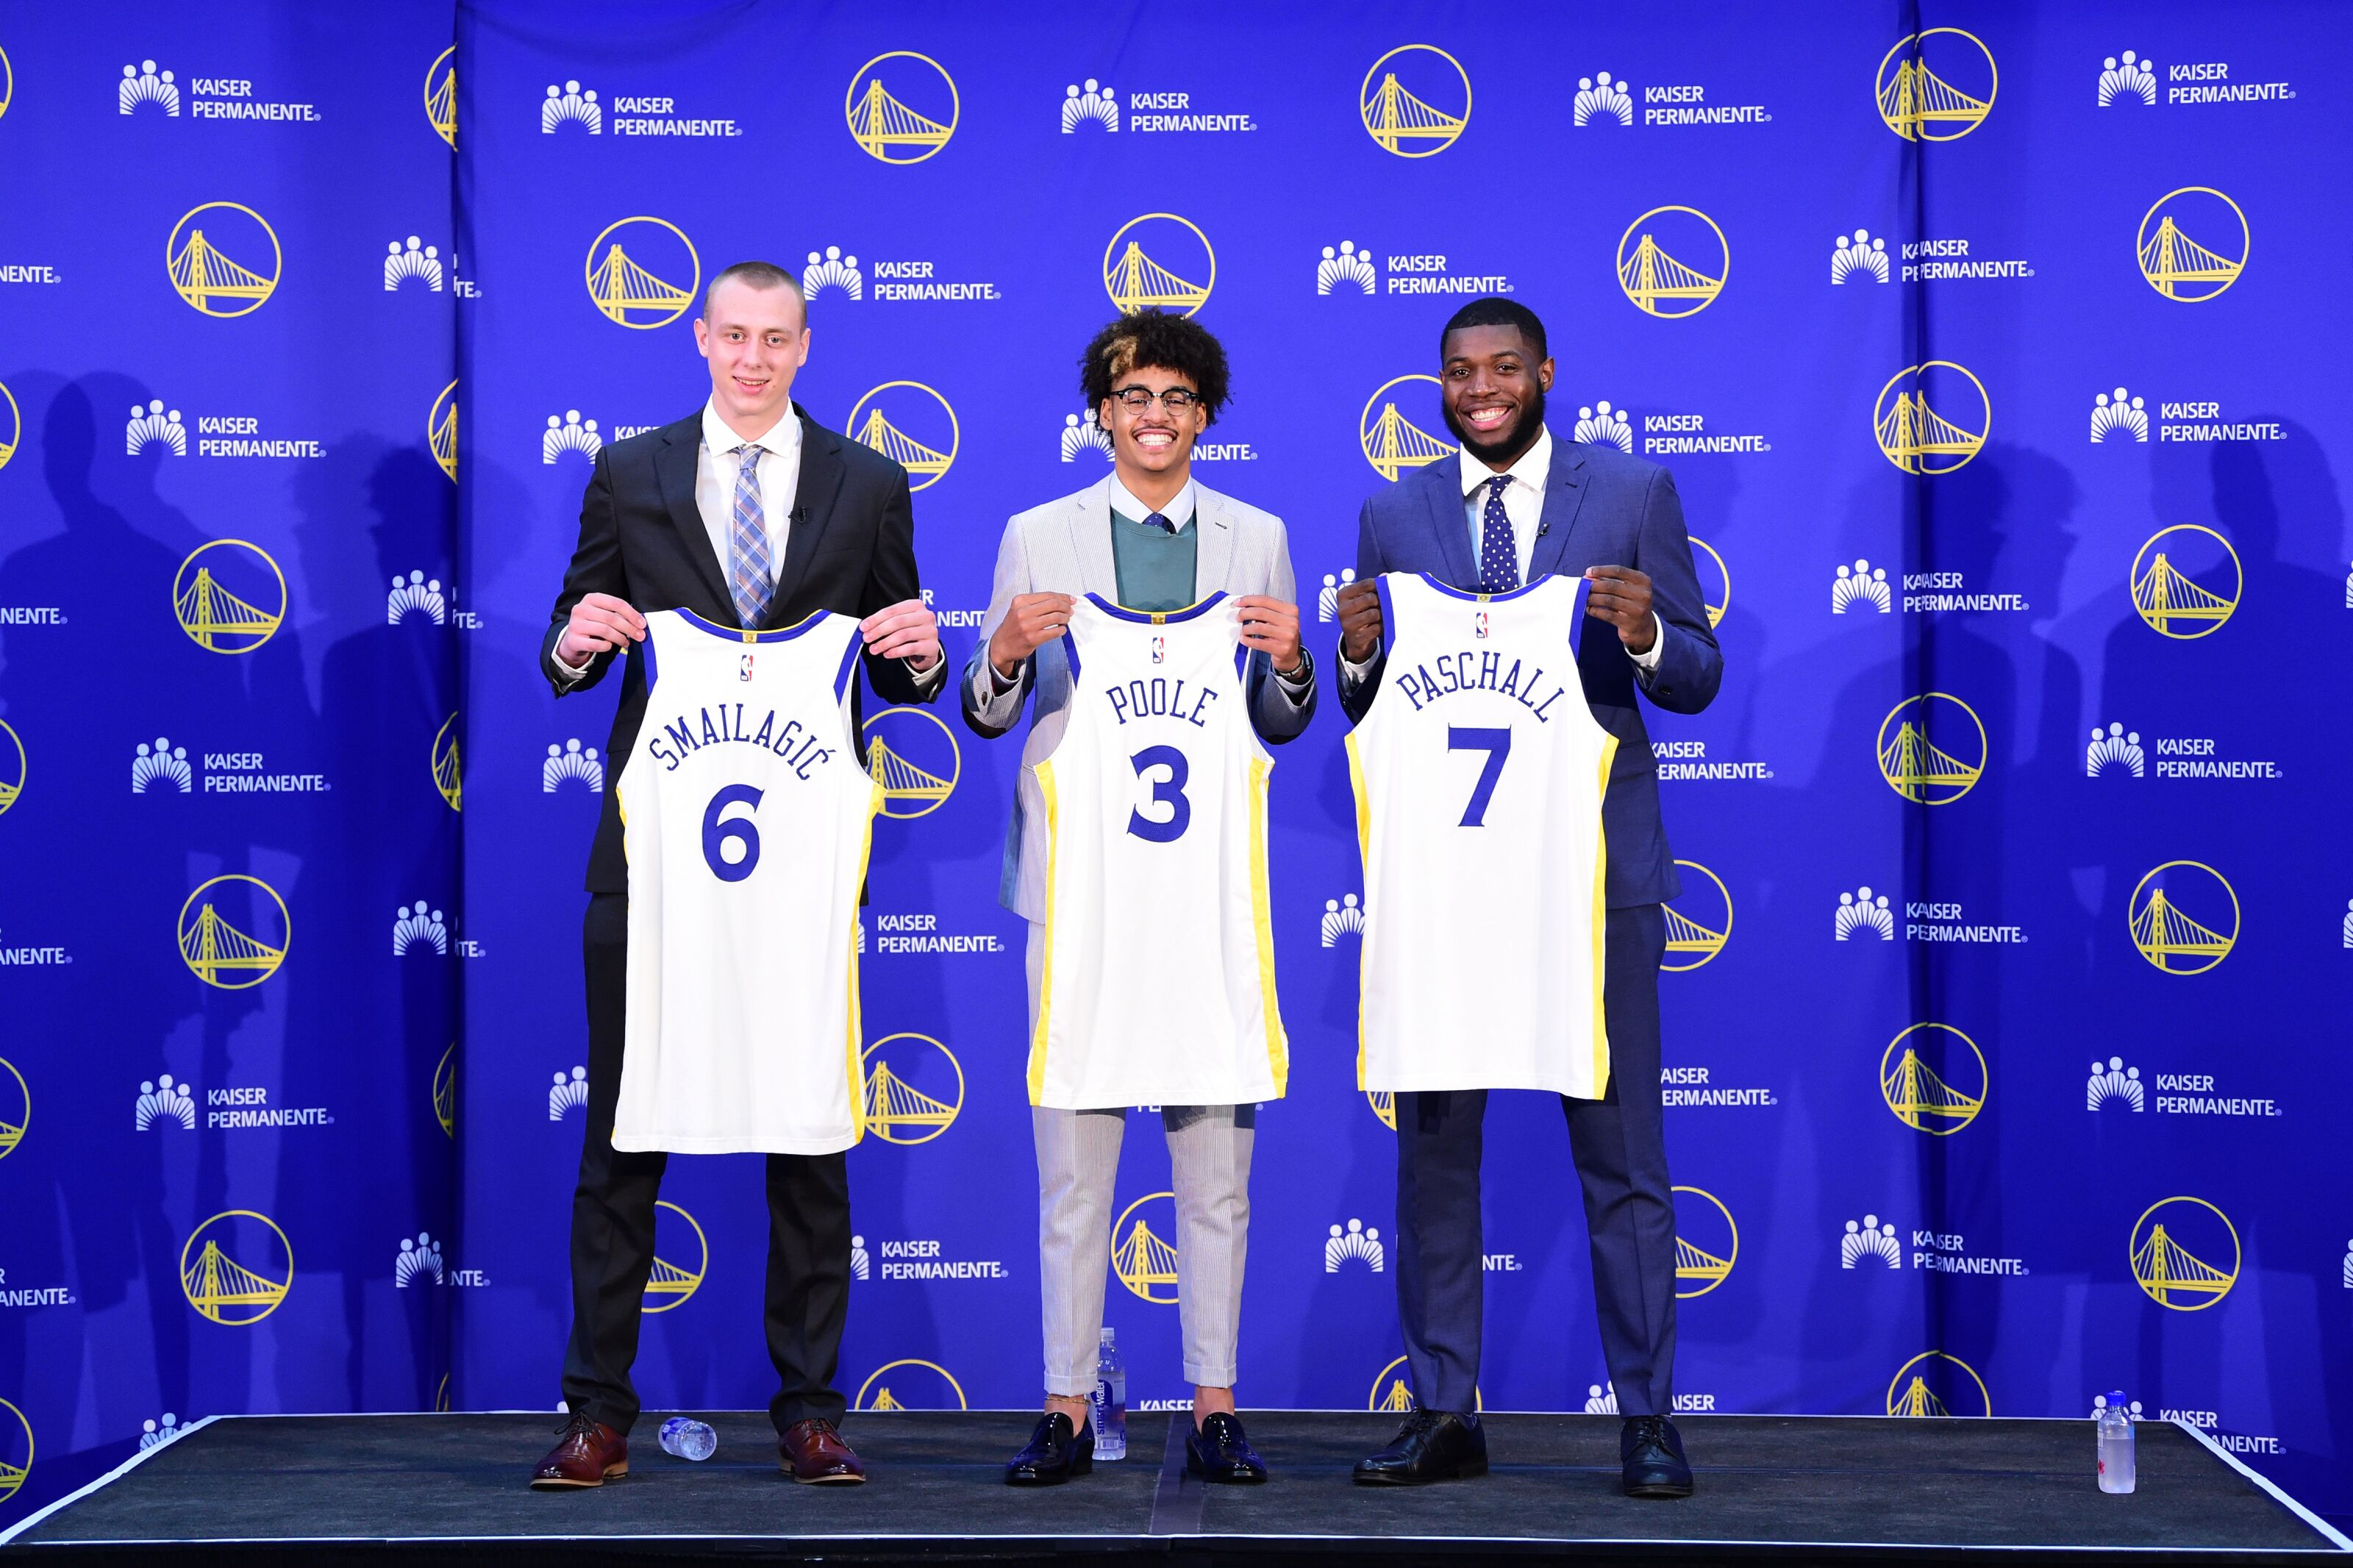 Golden State Warriors: Youth could hurt or help the team this season